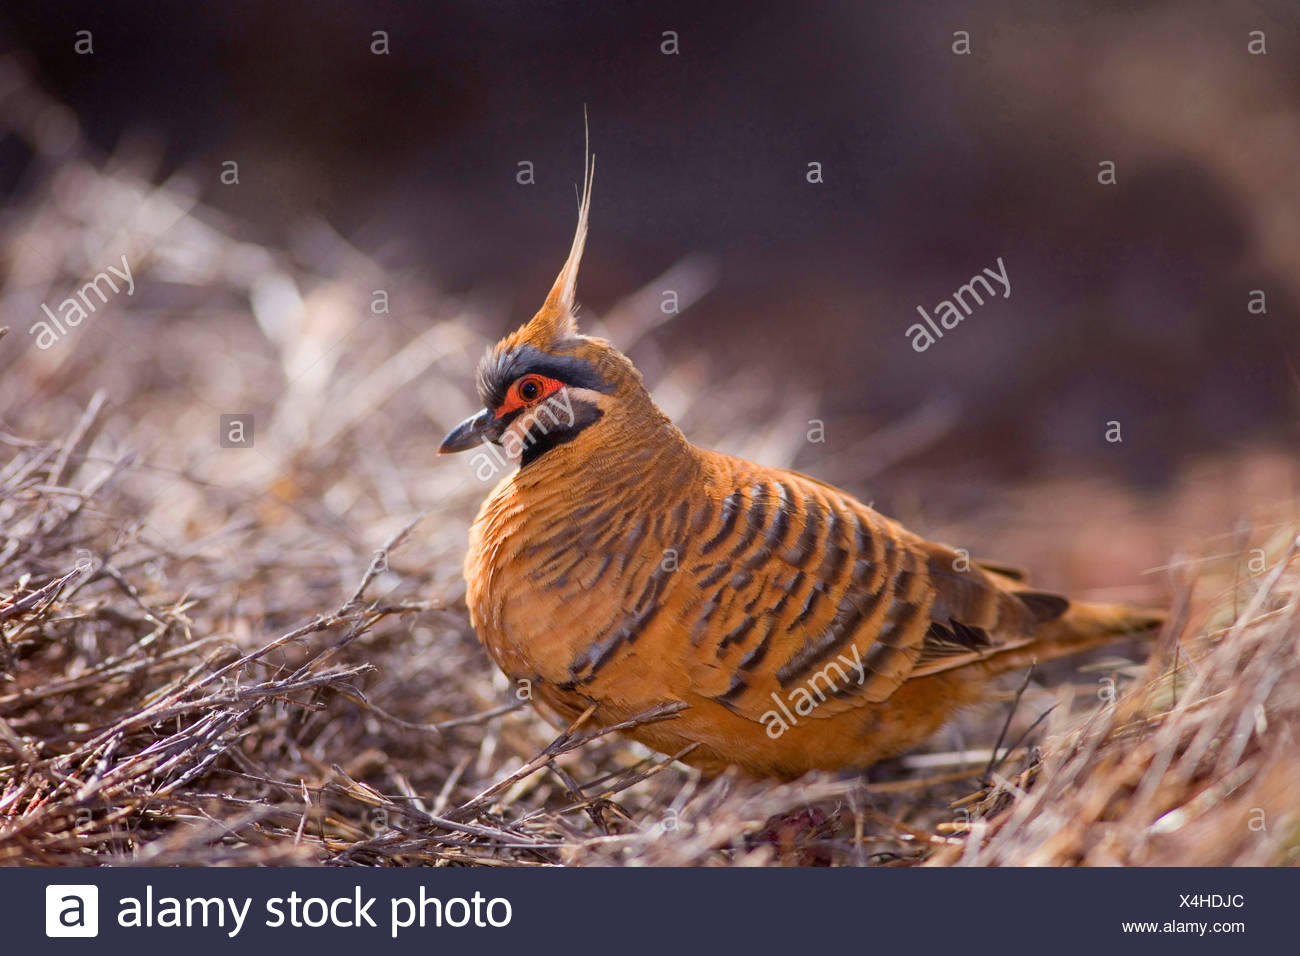 White-bellied Plumed Pigeon, Red-bellied Spinifex Pigeon  (Petrophassa plumifera ferruginea ), adult foraging for seeds amidst dried-up grass, Australia, Western Australia, Karijini National Park, Hamersley Range - Stock Image